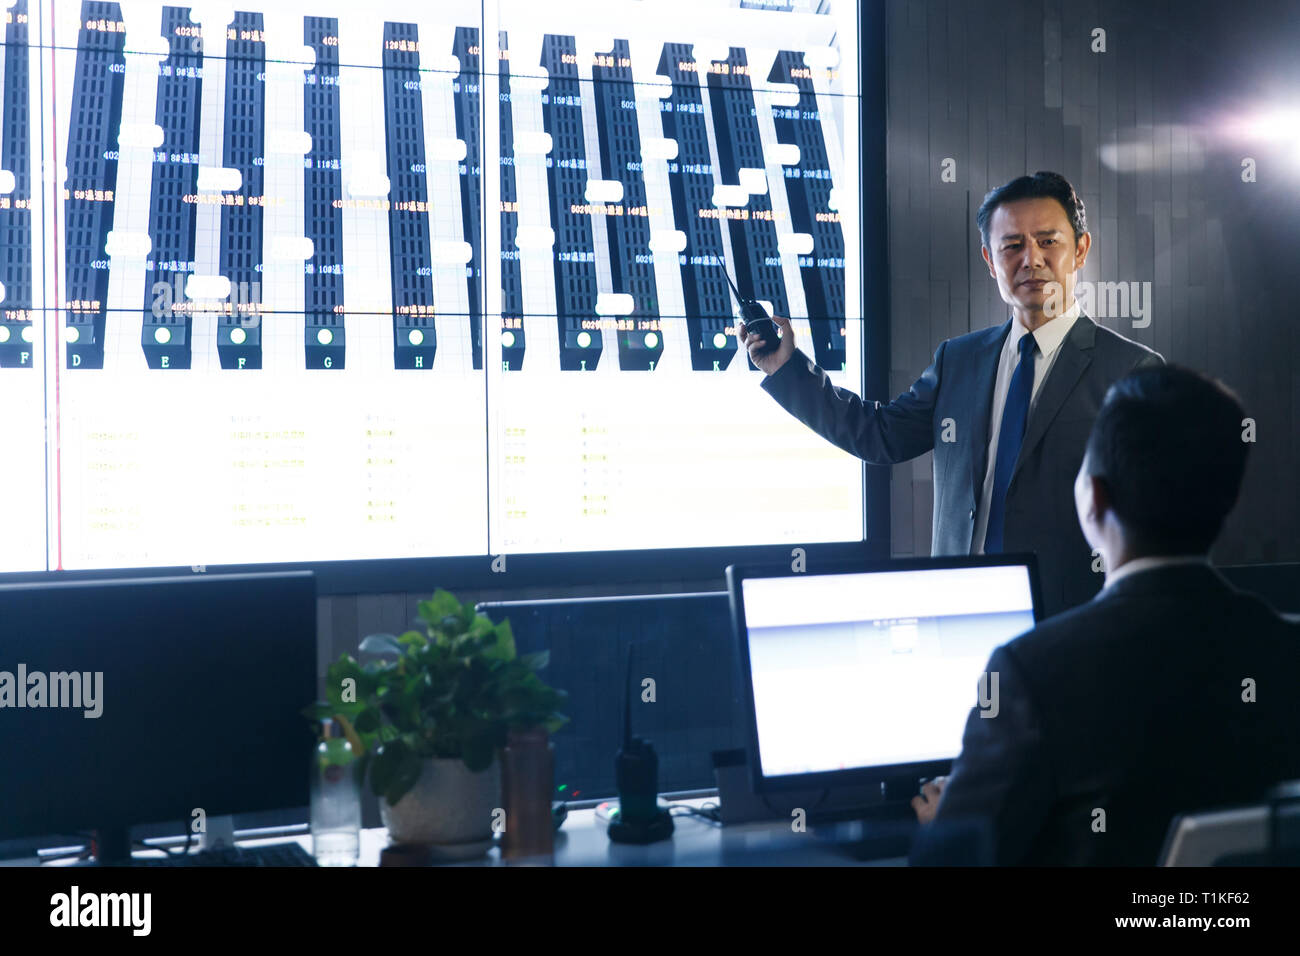 Business people in the control room Stock Photo